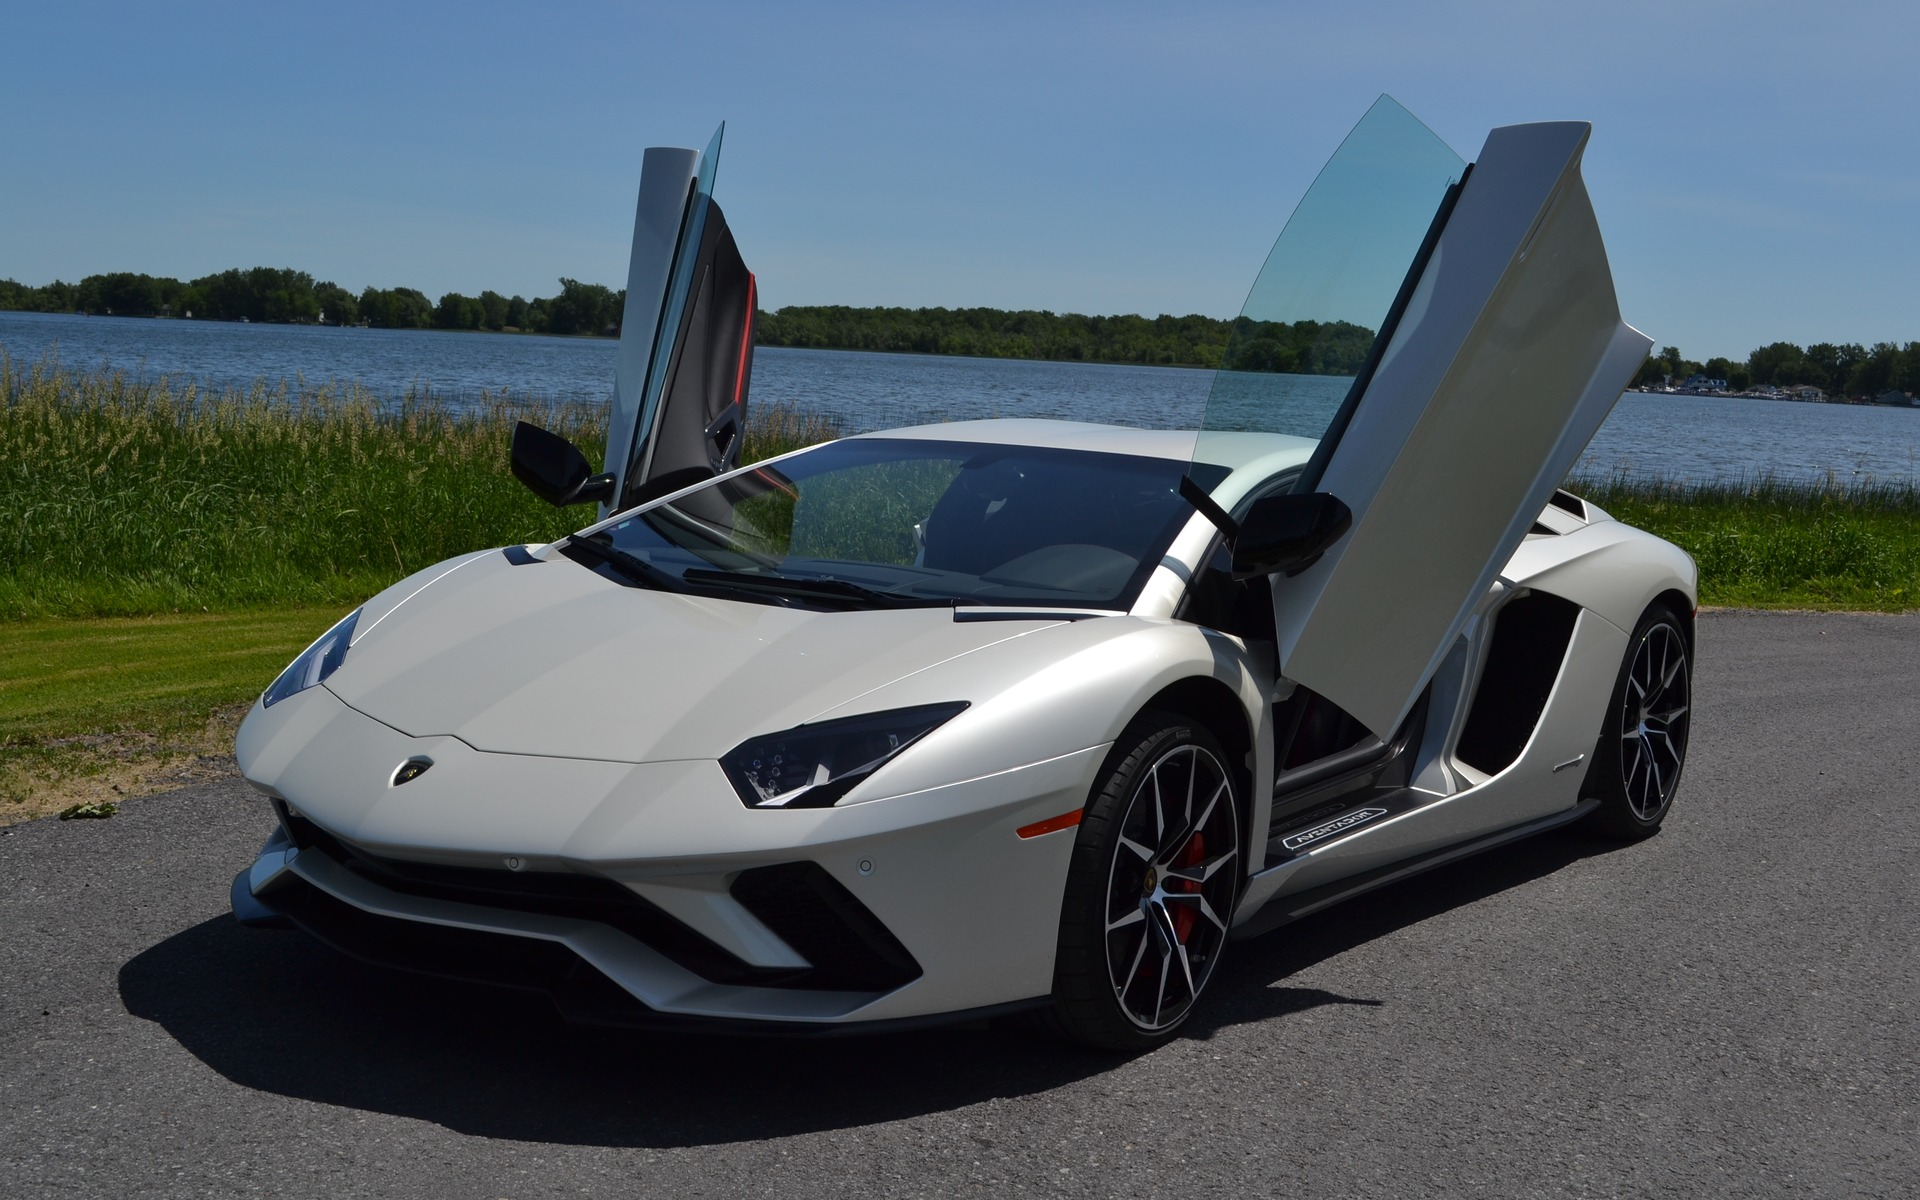 2017 Lamborghini Aventador S Fast And Furious The Car Guide